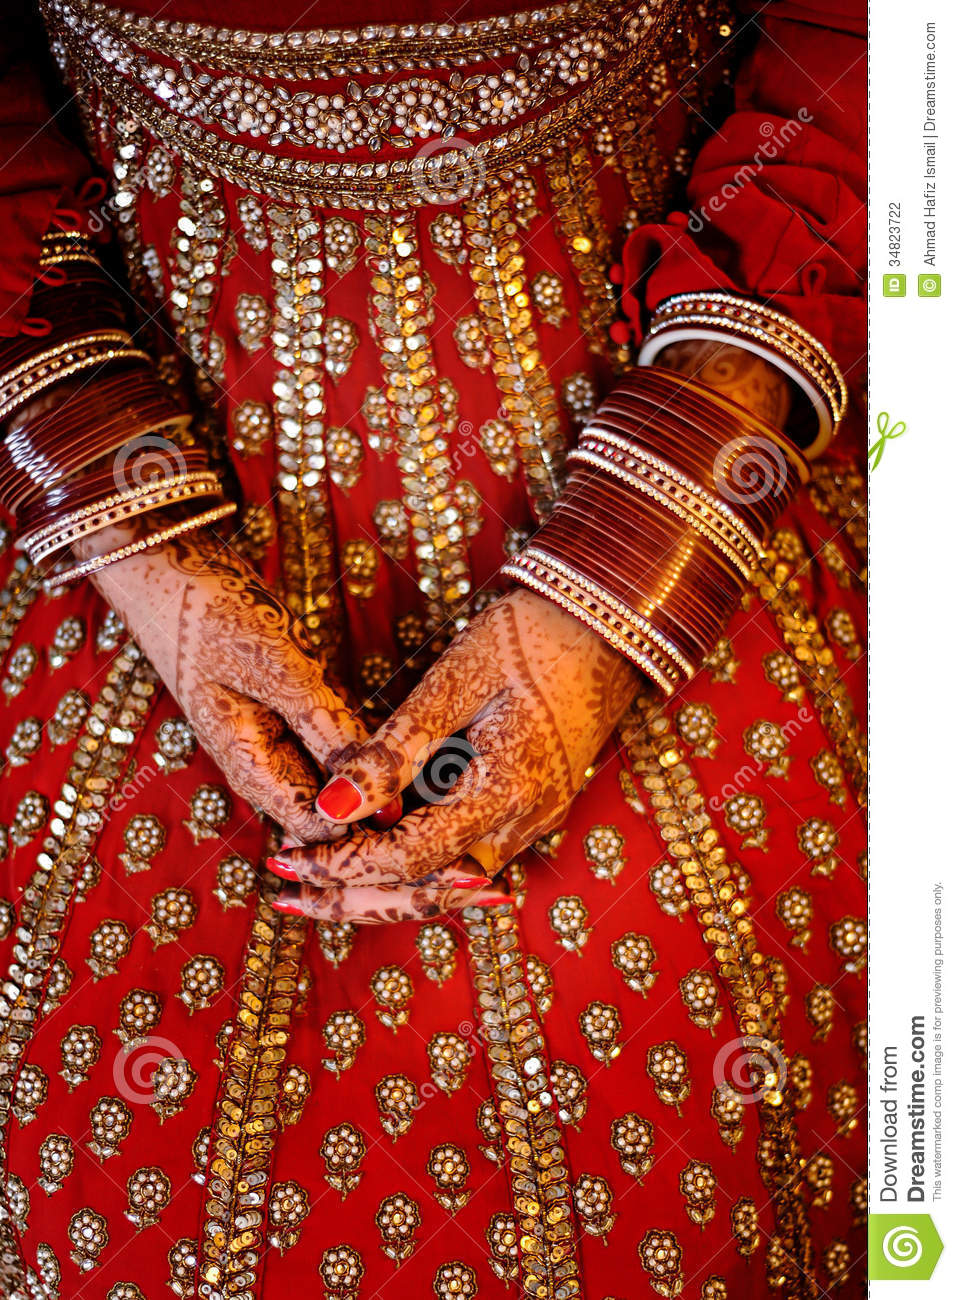 Indian Bride\'s Hands Wearing Bangles Decorated With Beautiful He ...